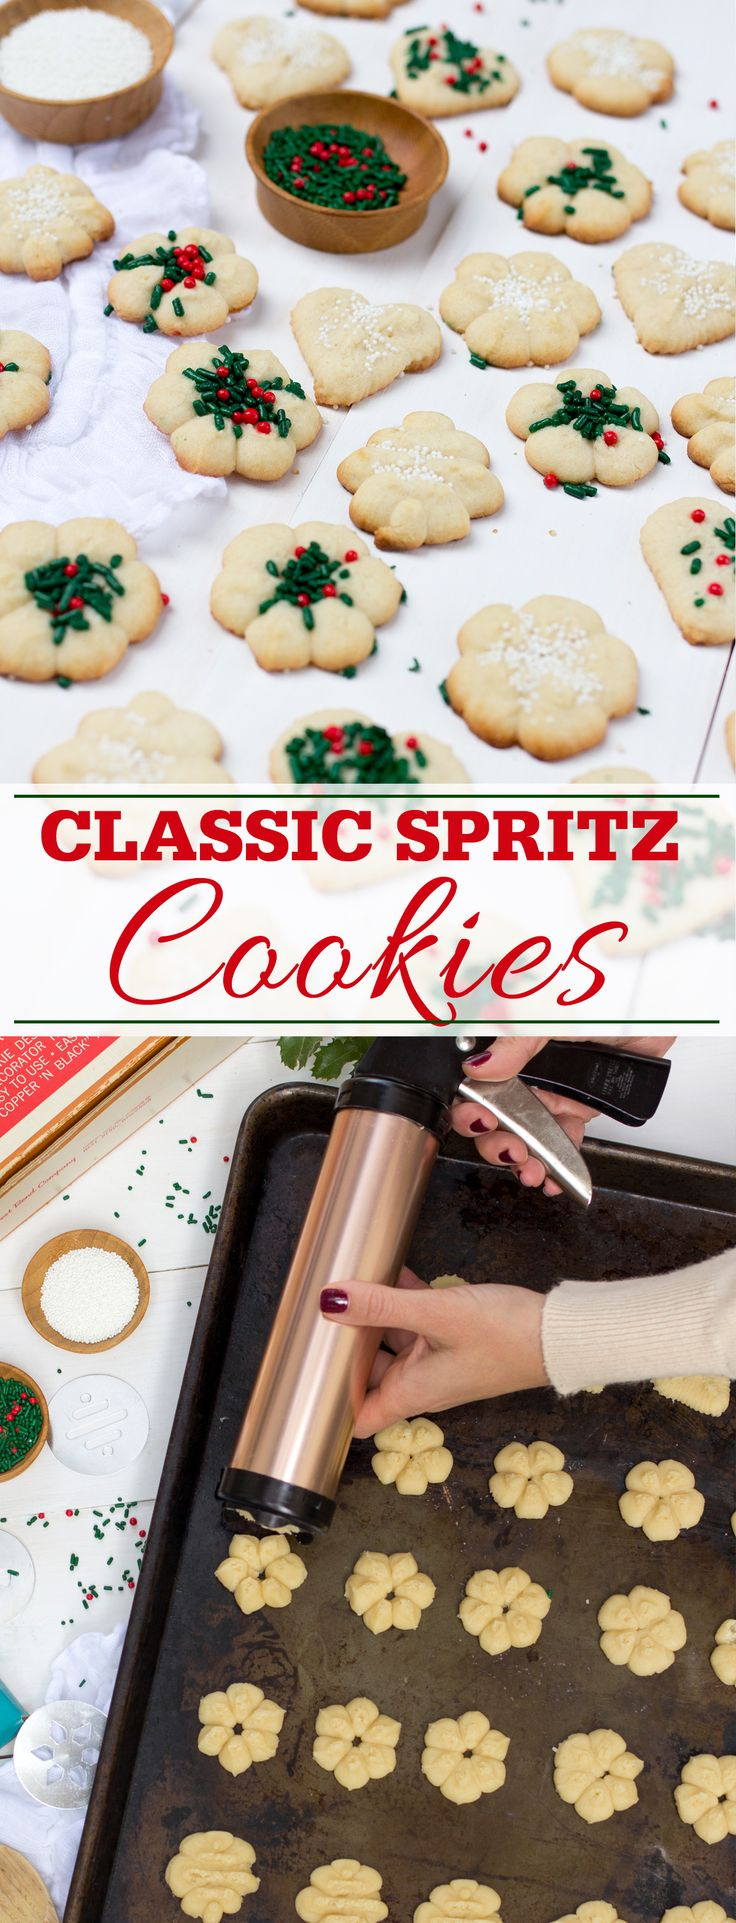 Classic spritz cookie recipe that is buttery rich and pressed into a variety of designs using a spritz cookie press.